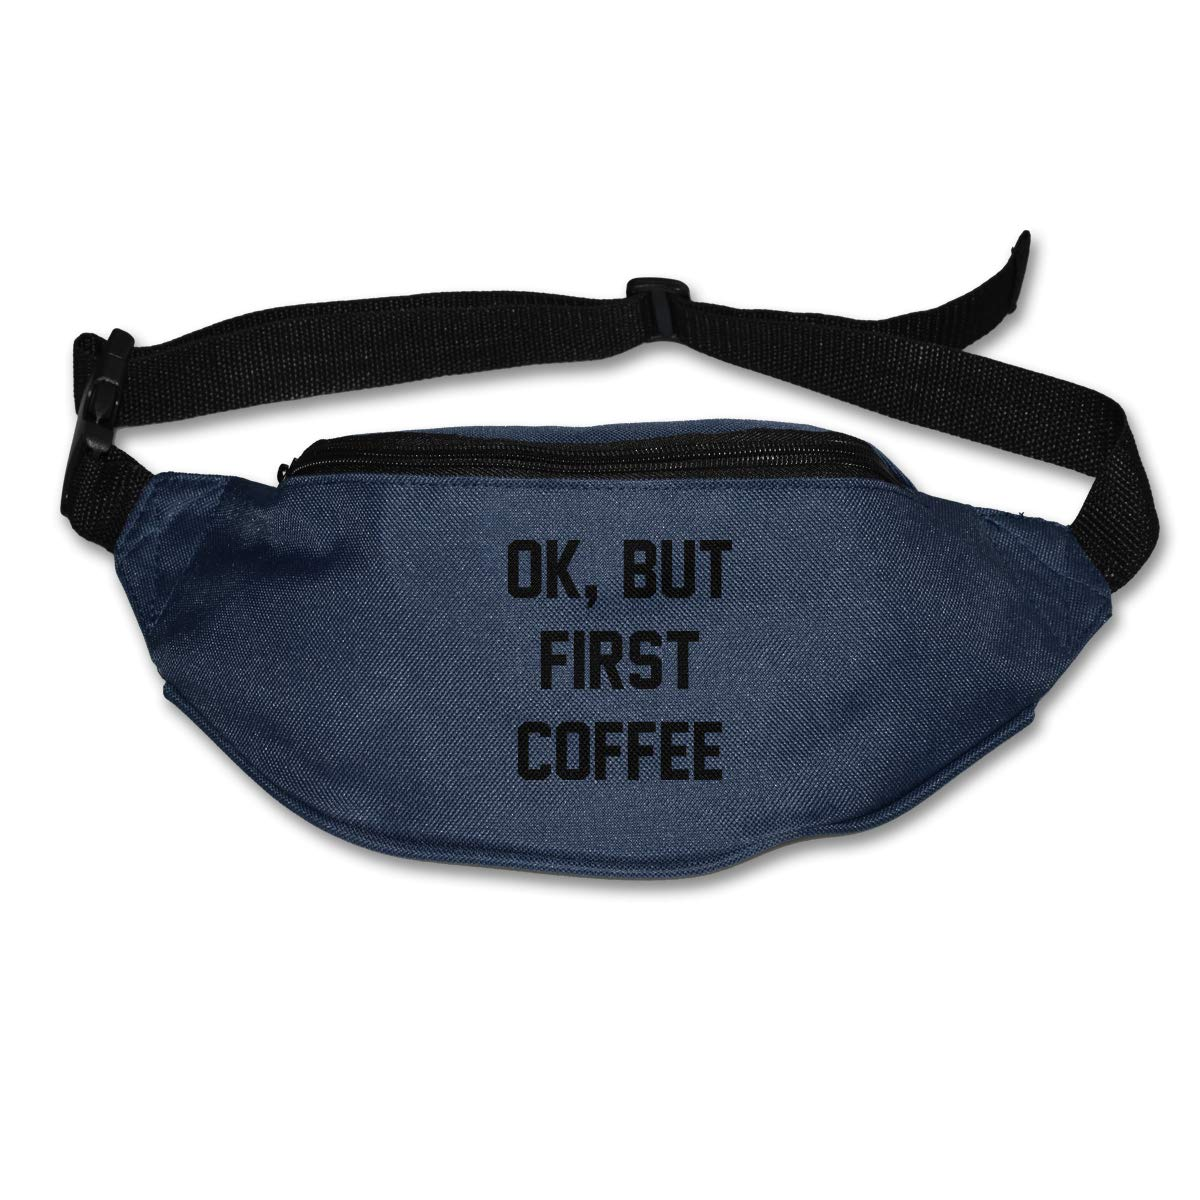 But First Coffee Sport Waist Pack Fanny Pack Adjustable For Hike OK